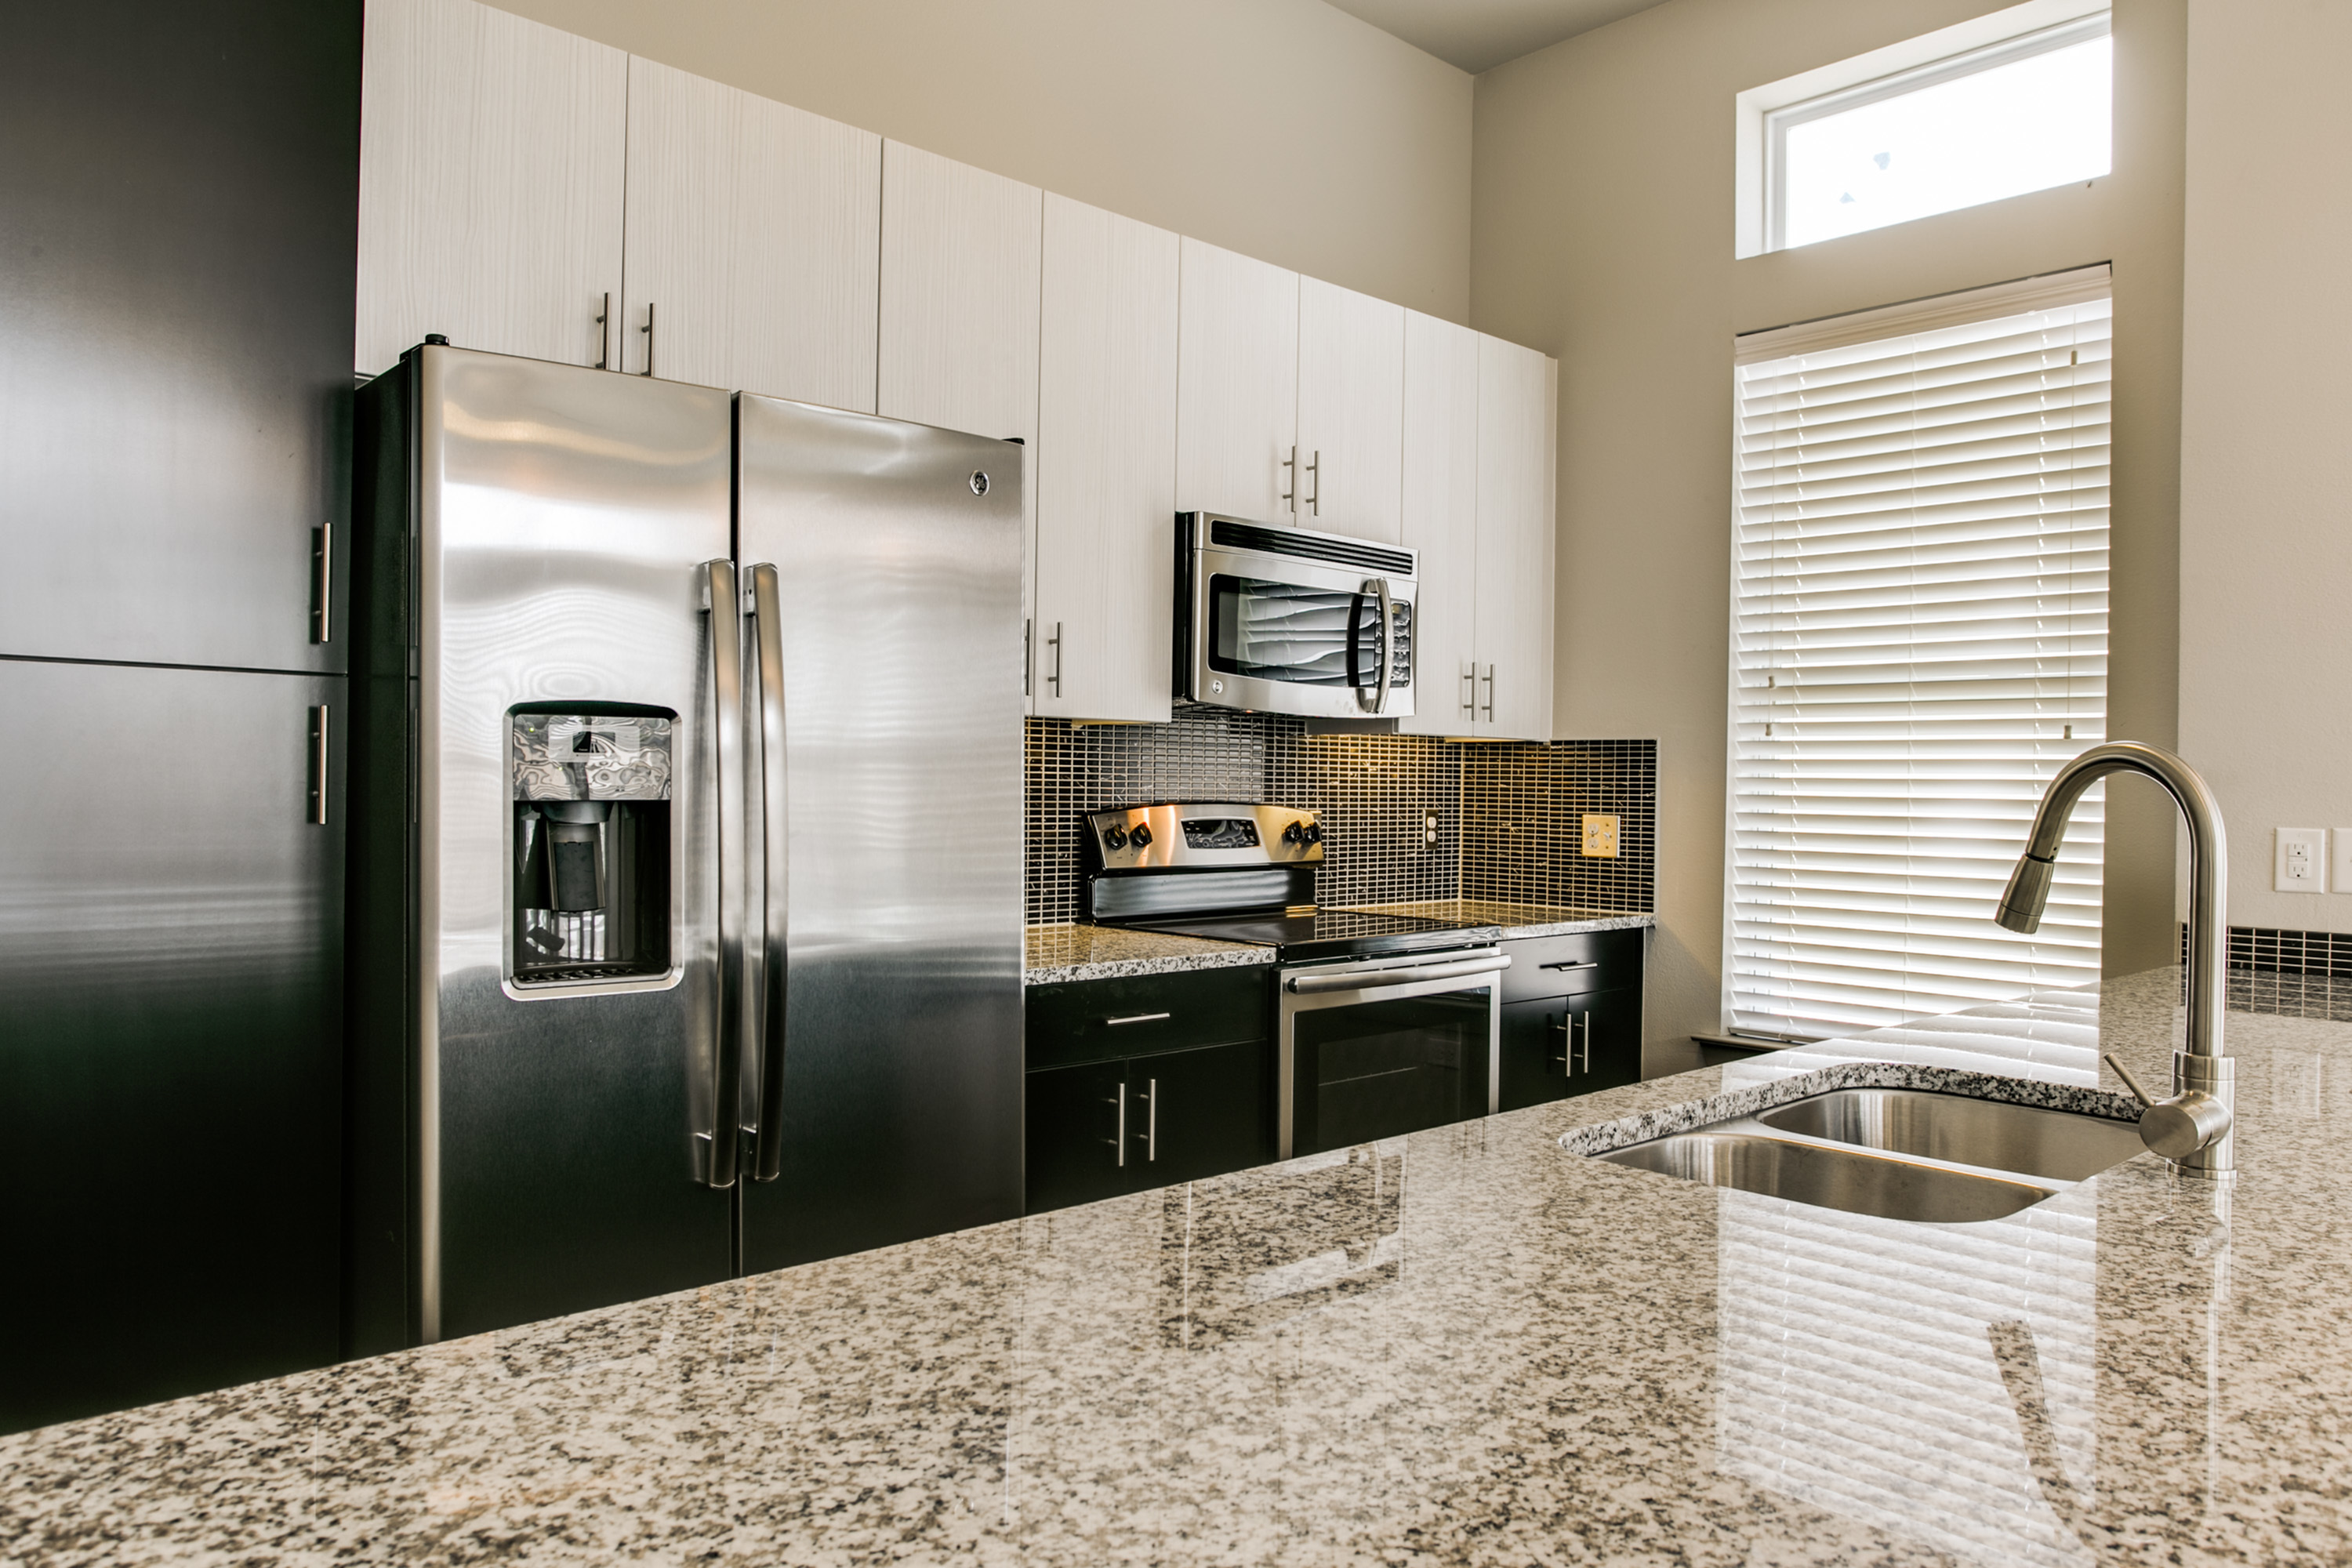 Image of Stainless Steel Appliances for Routh Street Flats